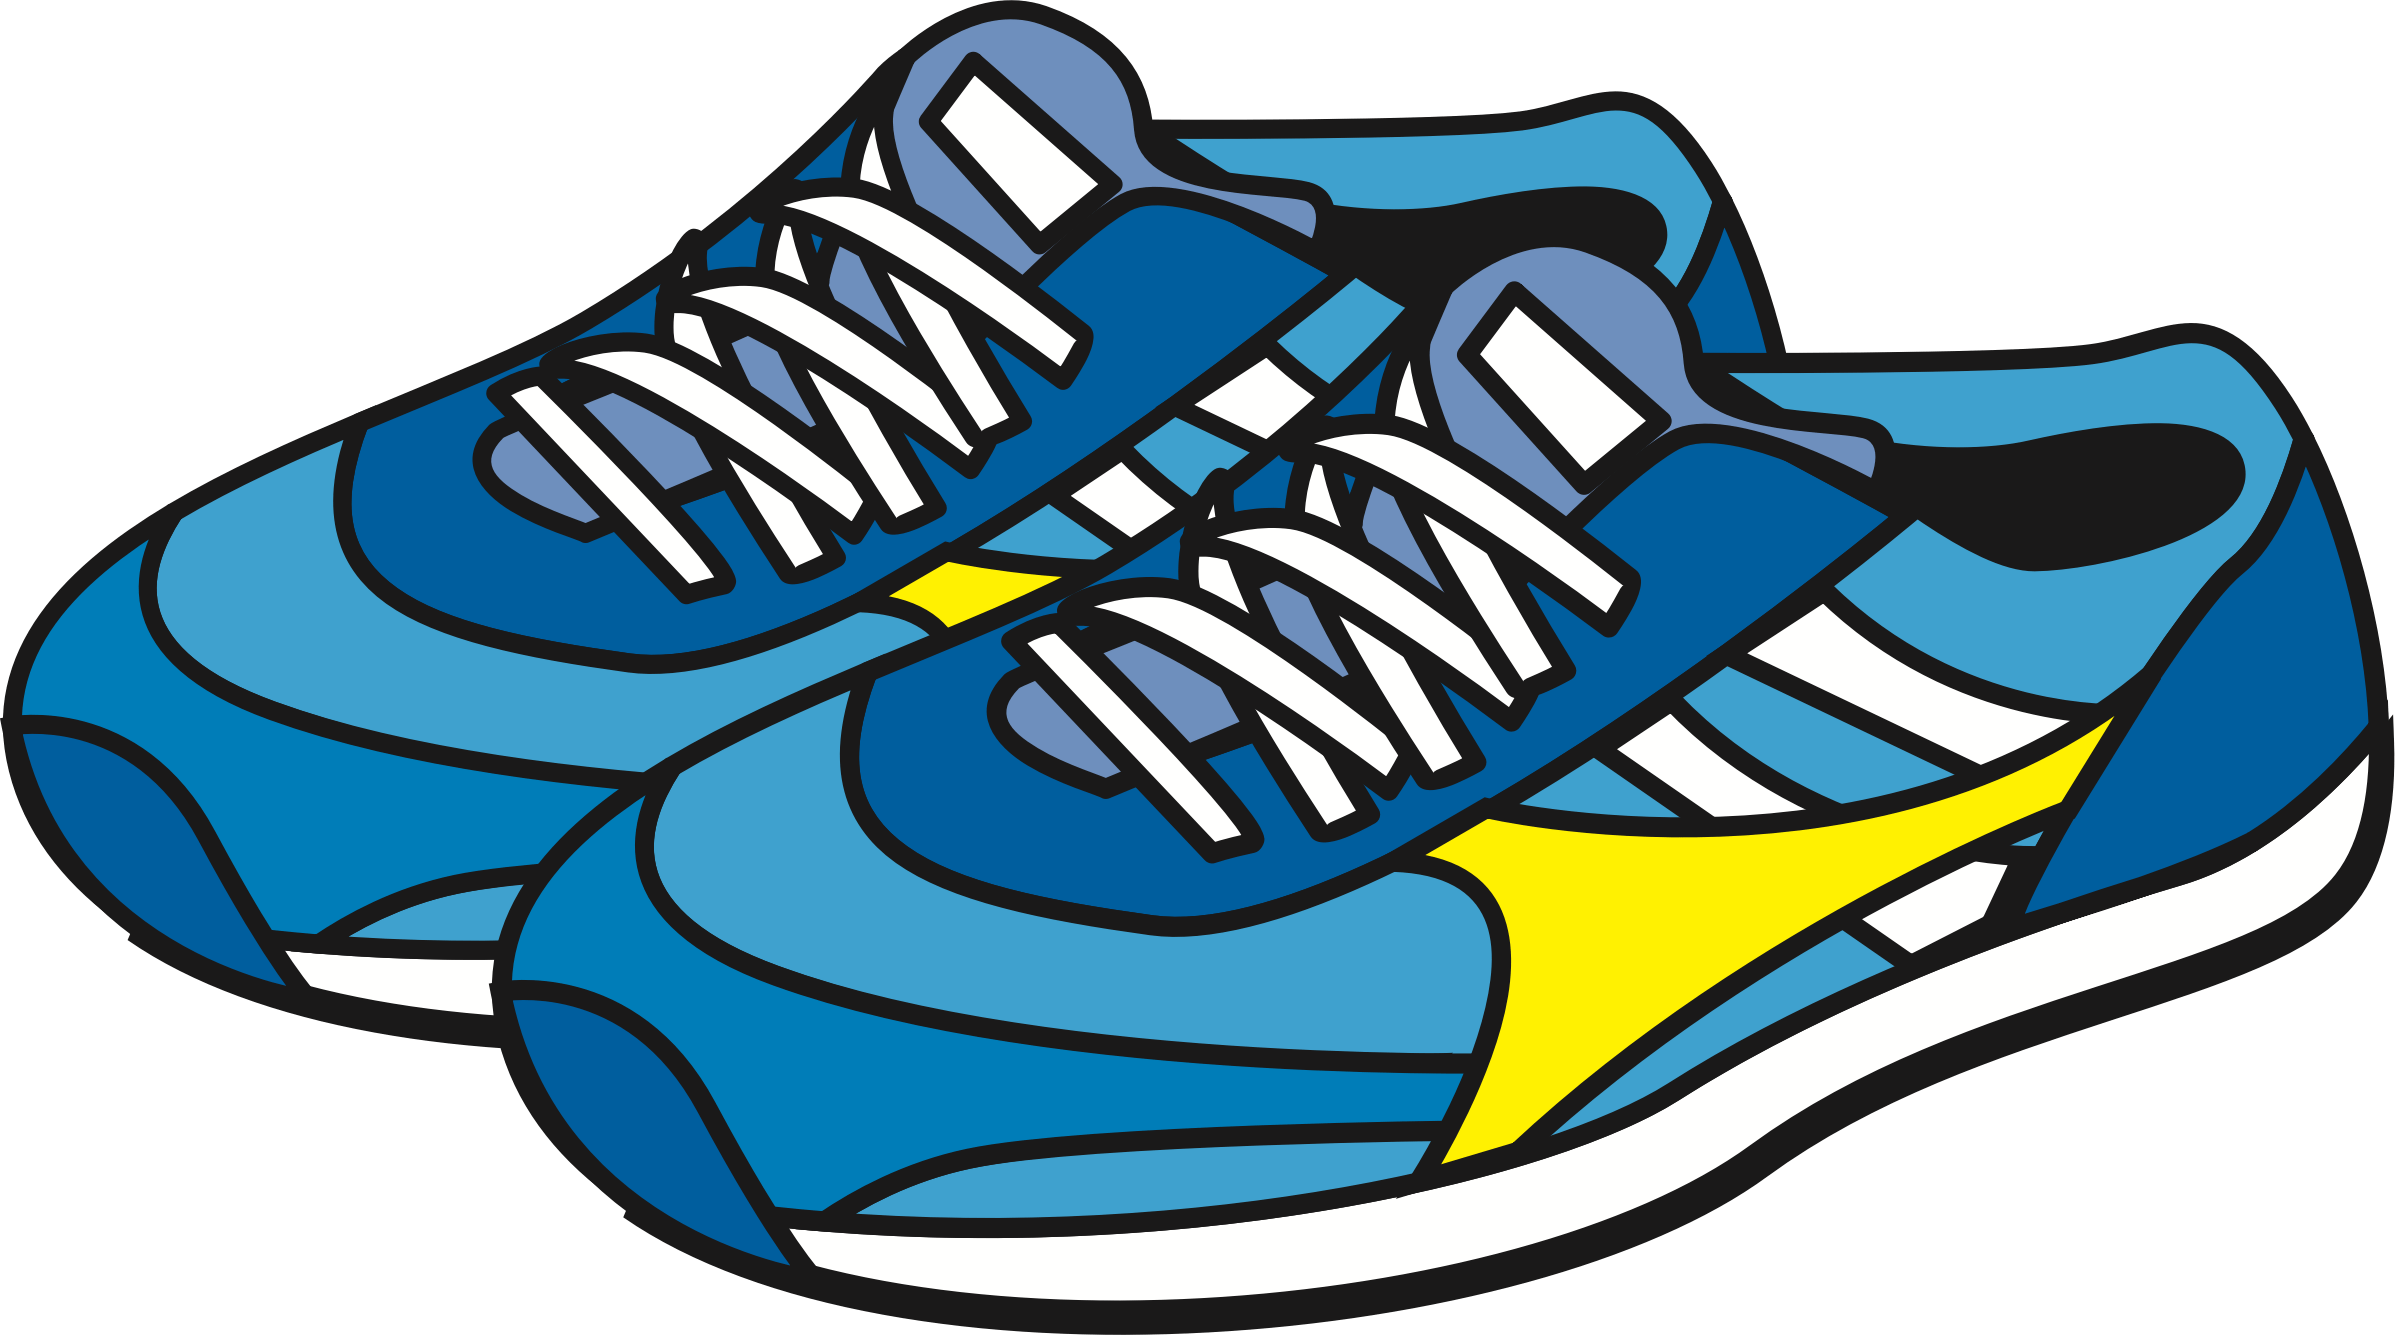 Art palette sneakers clipart picture transparent library Sneakers Clipart Big Shoe Free On Cartoon Image For Baby Boys Shoes ... picture transparent library